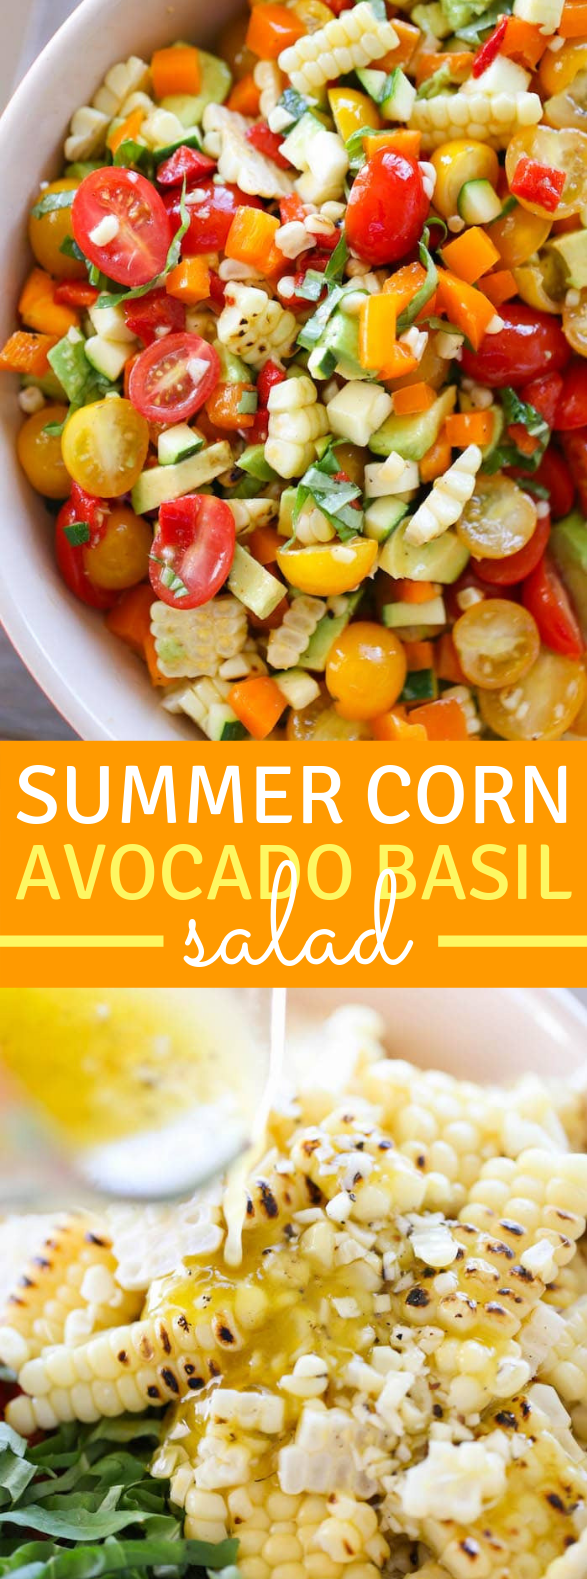 SUMMER CORN AVOCADO BASIL SALAD #vegetarian #vegan